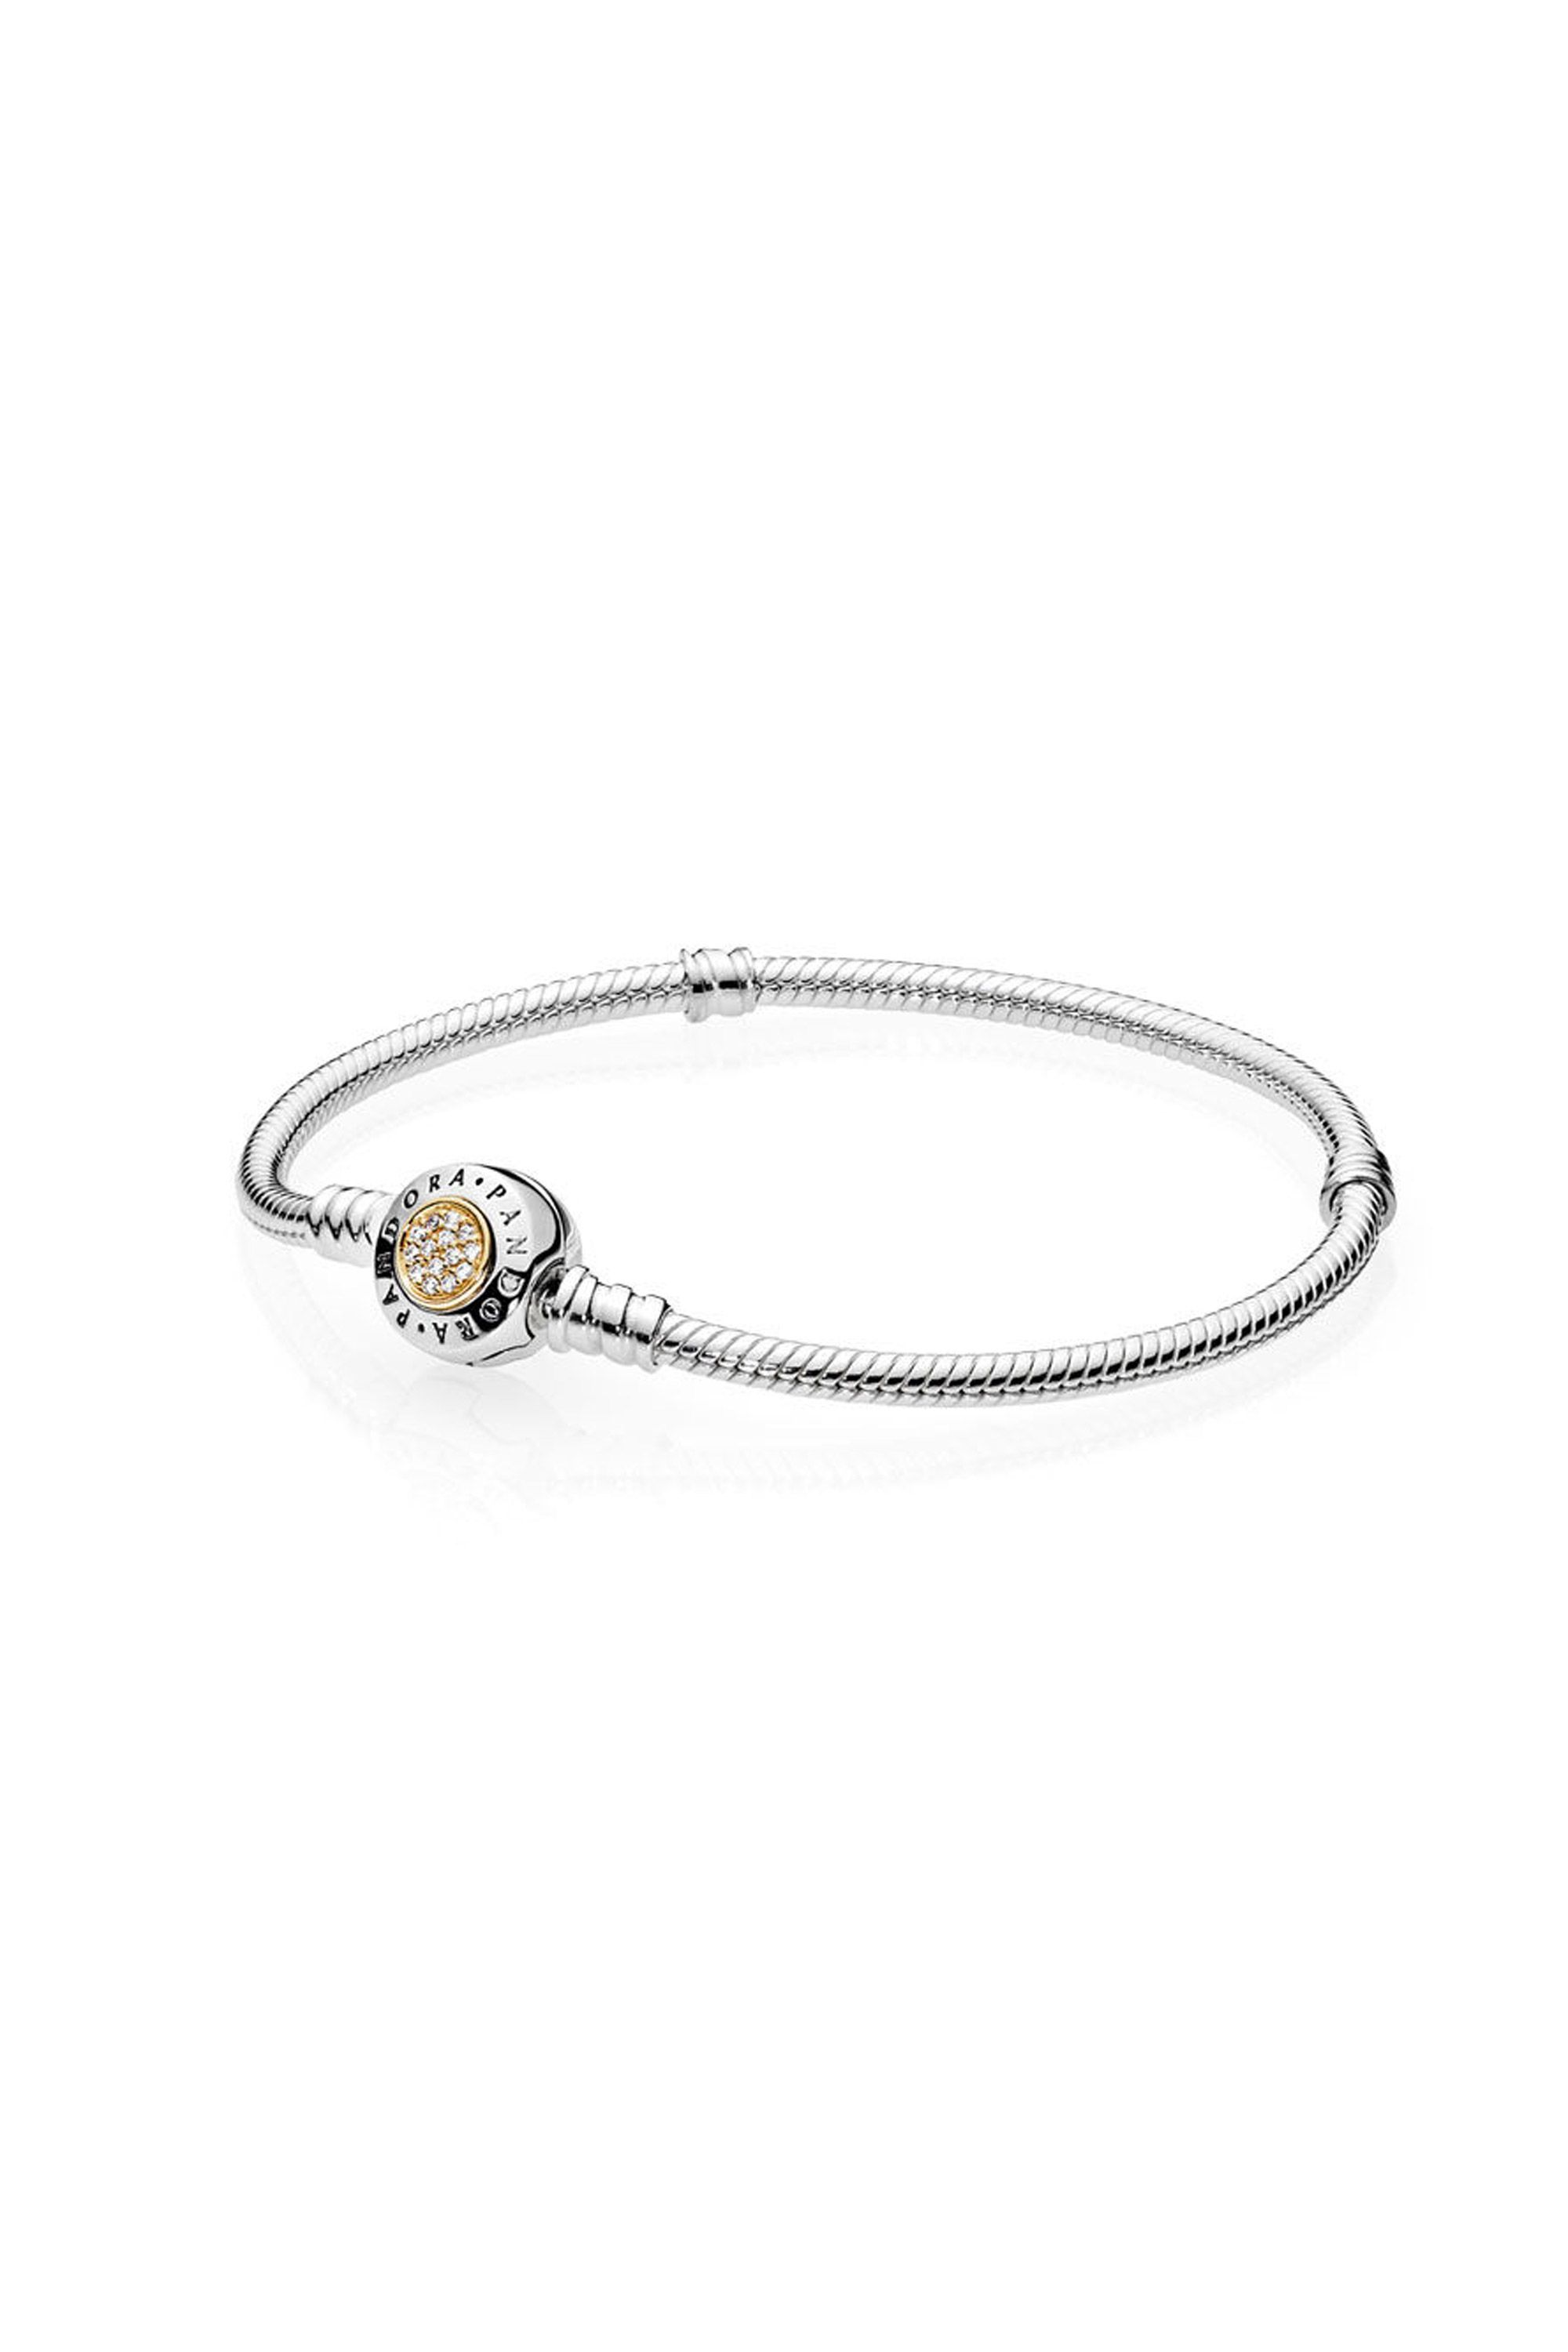 "<p>""I can't wait to give this bracelet to my best friend; I'll add some charms with a meaning that only she and I will understand."" <em data-redactor-tag=""em"">$100, </em><em data-redactor-tag=""em""><a href=""http://estore-us.pandora.net/en-us/pandora-signature-clear-cz/590741CZ.html?cgid=bracelets&src=categorySearch#sz=40&start=1&cgid=bracelets"" target=""_blank"" data-tracking-id=""recirc-text-link"">pandora.net</a></em></p>"